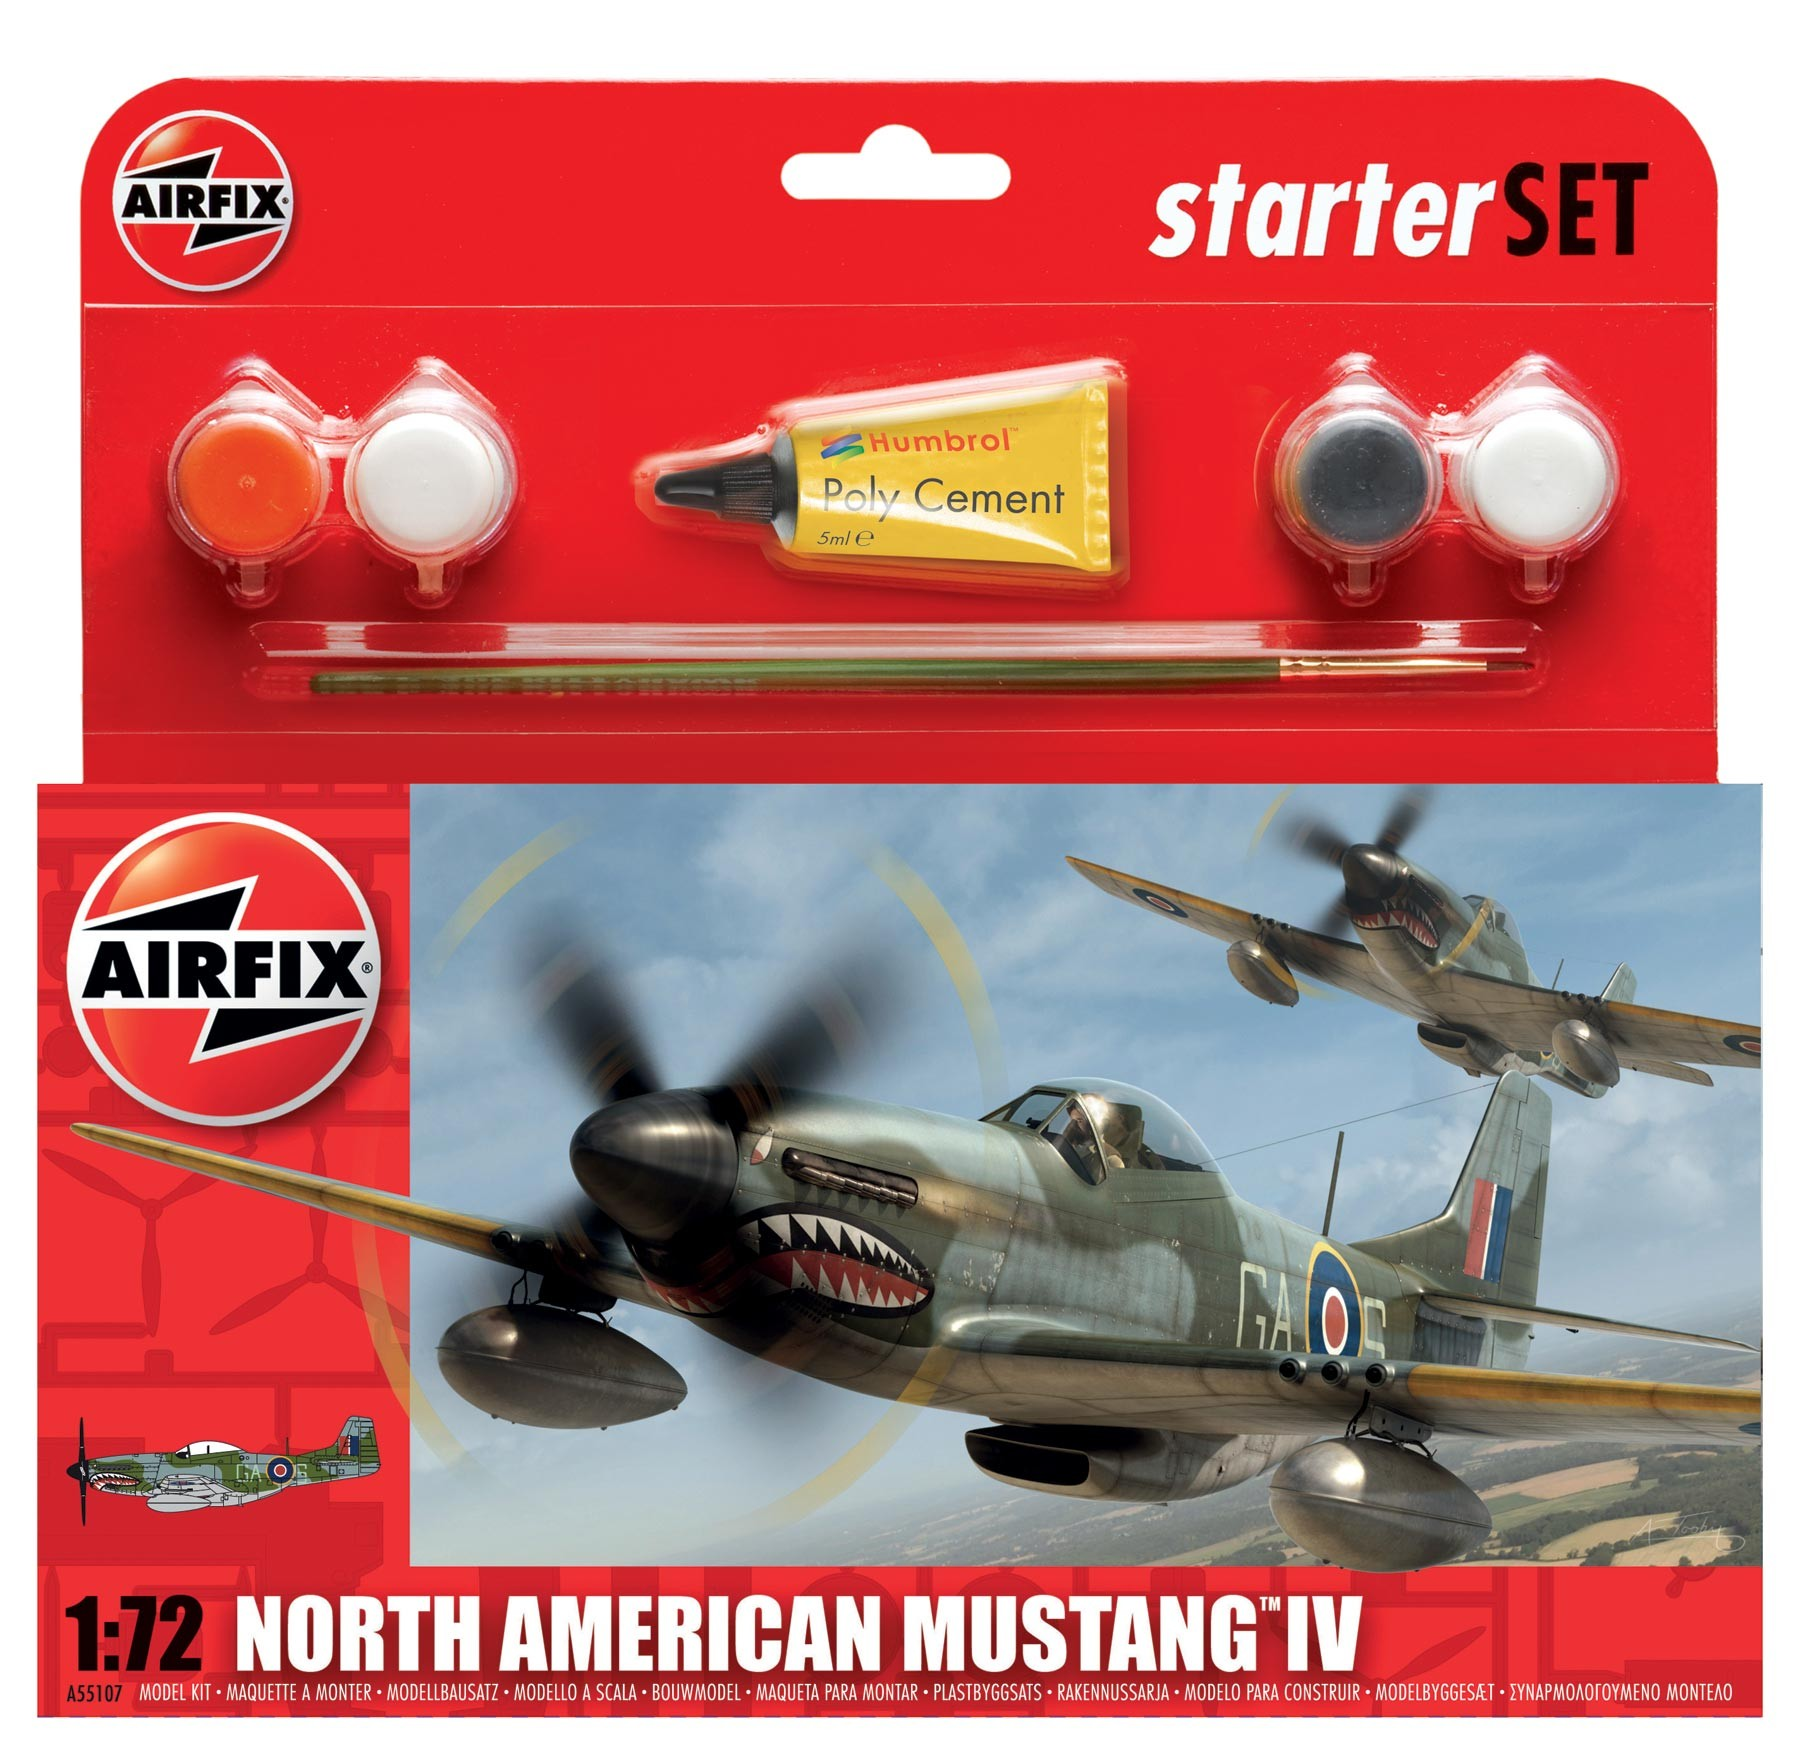 Airfix North American Mustang IV Starter Set 1:72nd Scale.